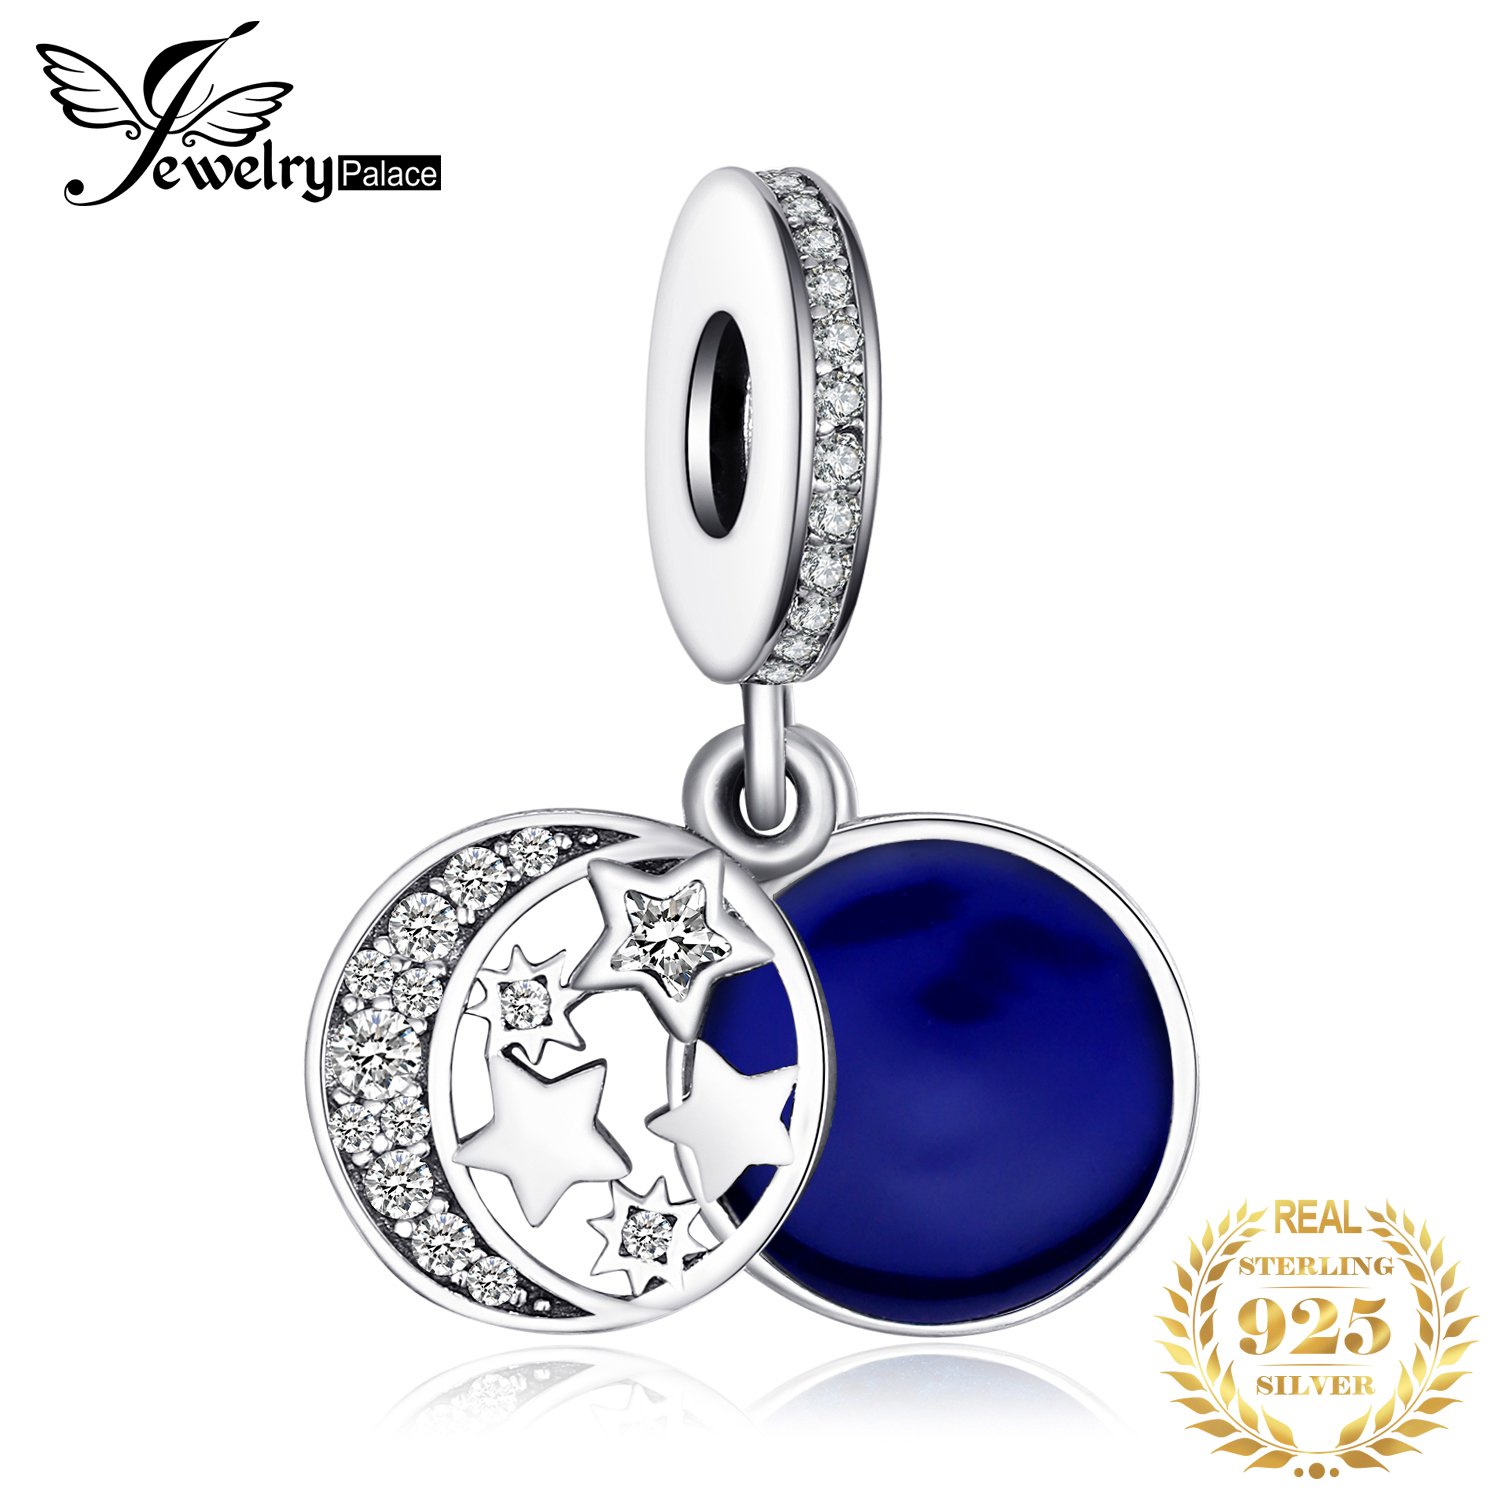 JewelryPalace Blue Moon Star 925 Sterling Silver Bead Charms Silver 925 Original For Bracelet Silver 925 original Jewelry Making image